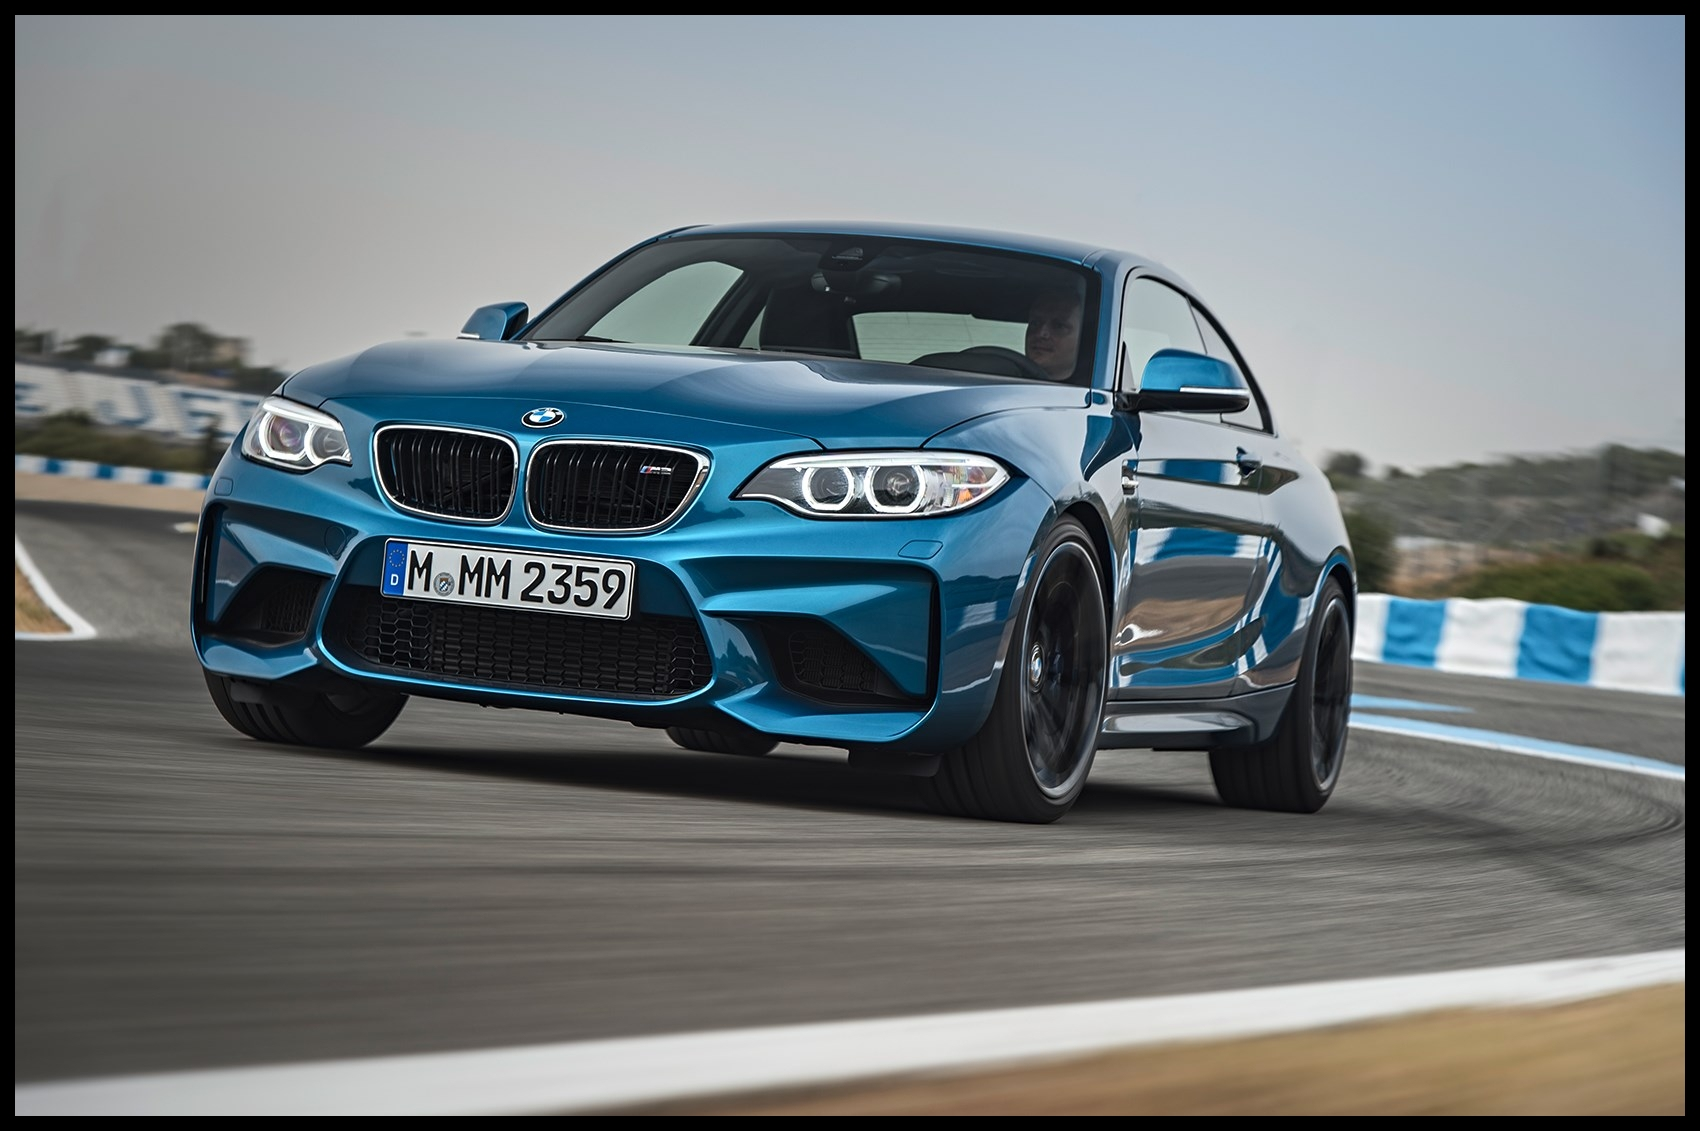 Bmw M235i Lease Bmw M2 Munich Finally Upgrades the M235i Into A Proper M Sports Car